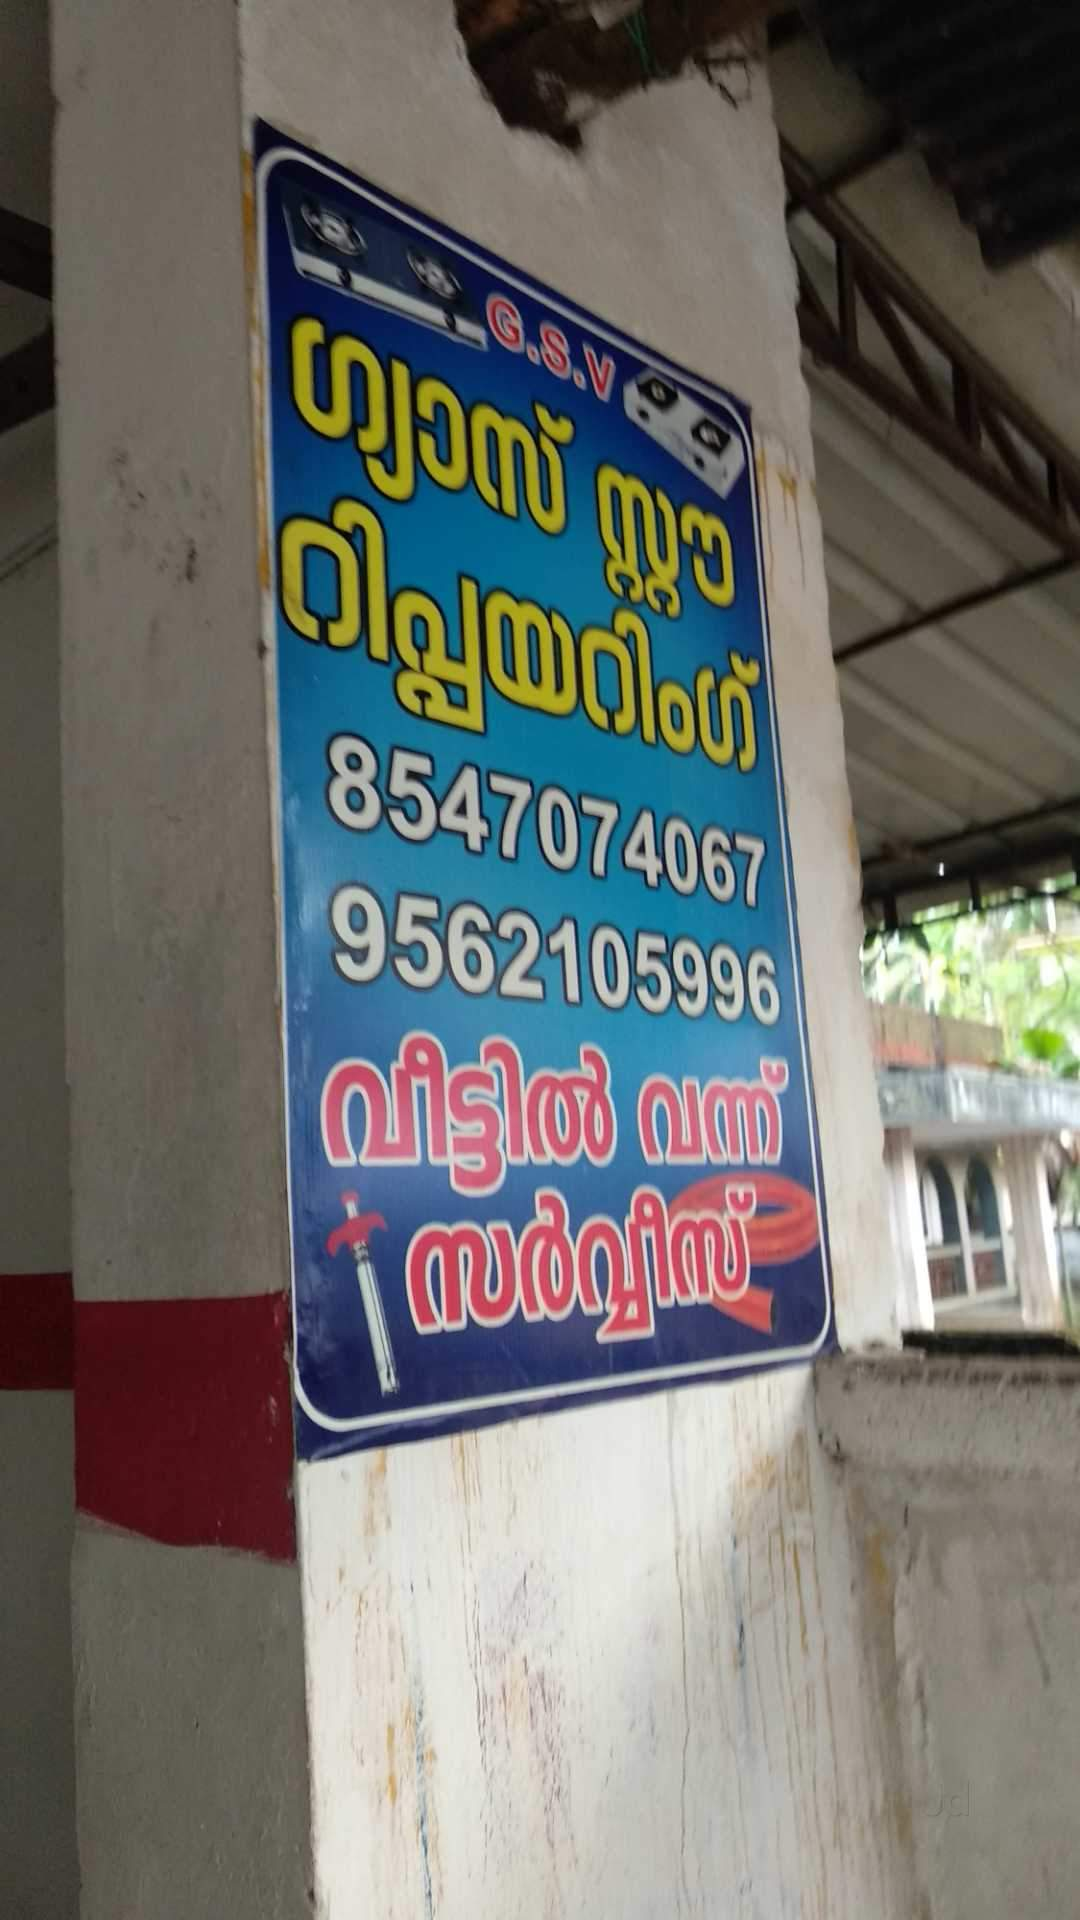 Gsv Gas Service, STOVE SALES & SERVICE,  service in Kayamkulam, Alappuzha